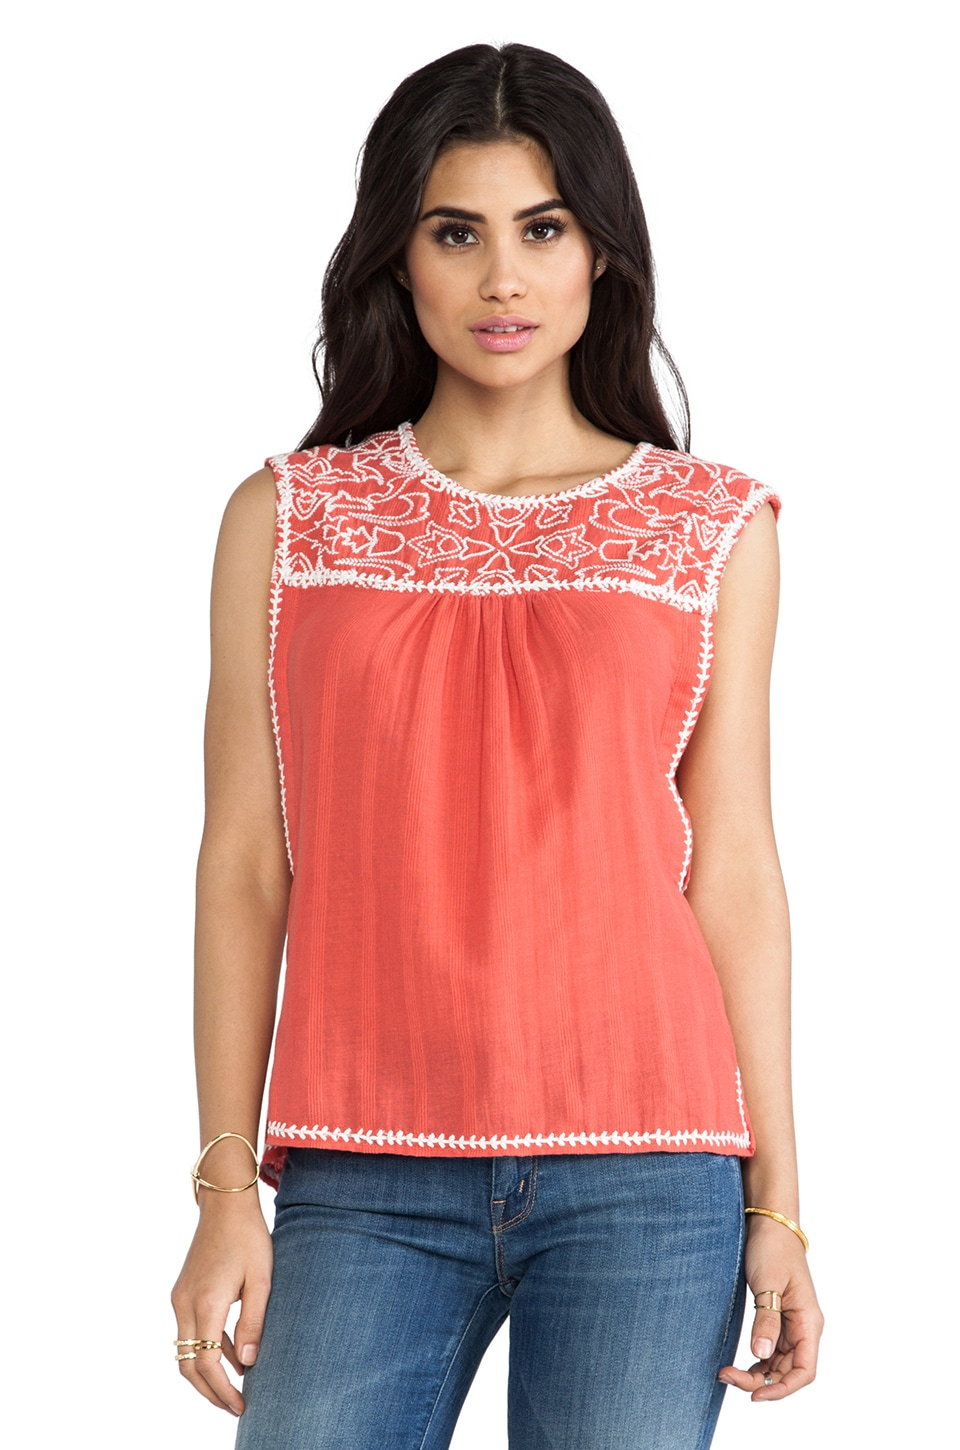 Dolce Vita Careen Top in Burnt Coral